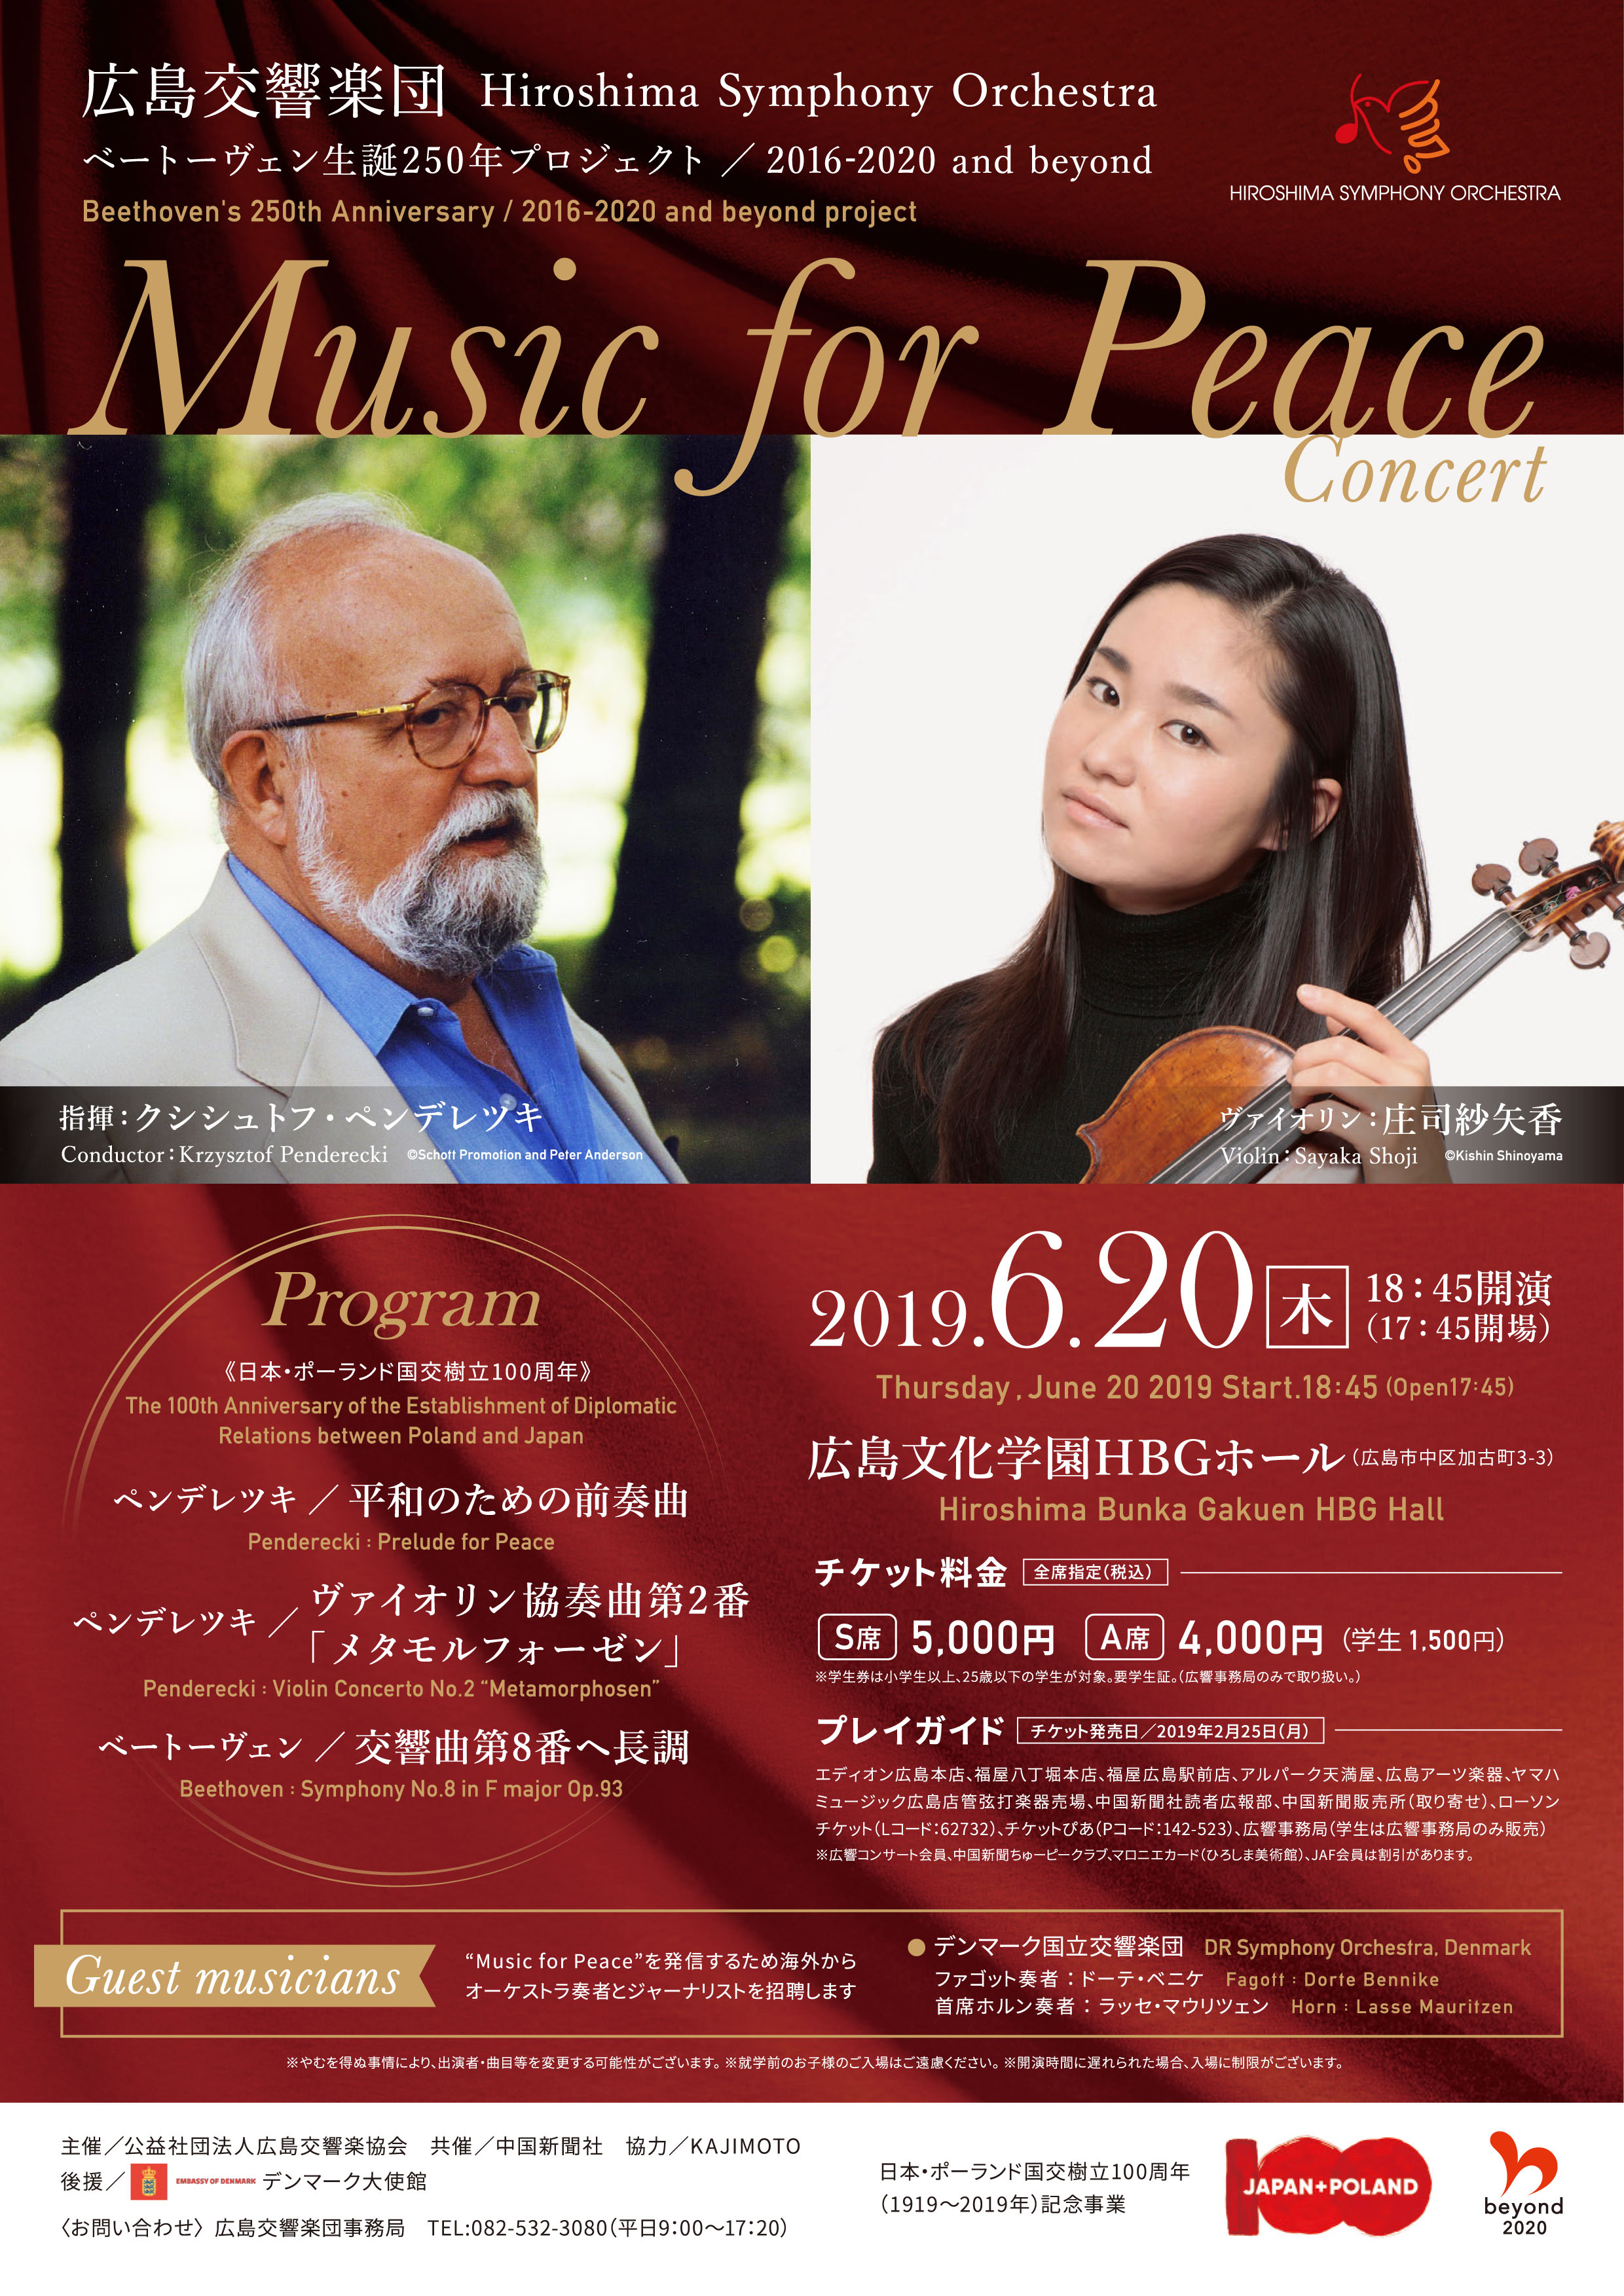 Music for Peace Concert in Hiroshima